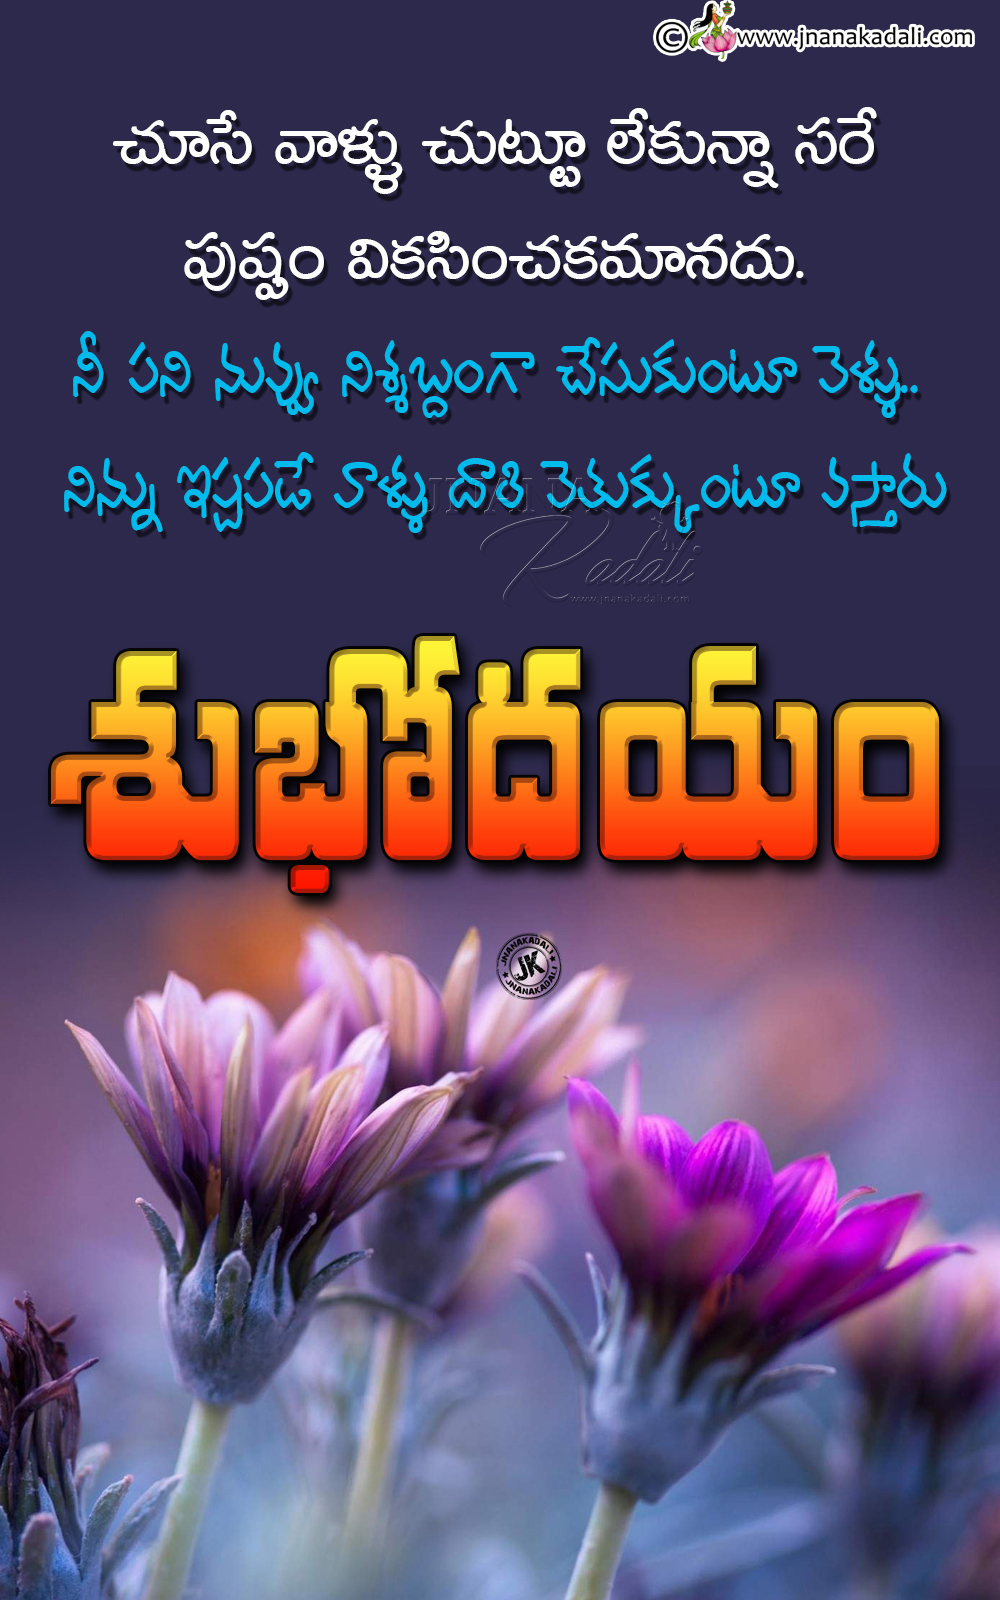 Telugu Good Morning Quotes Whats App Sharing Best Good Morning